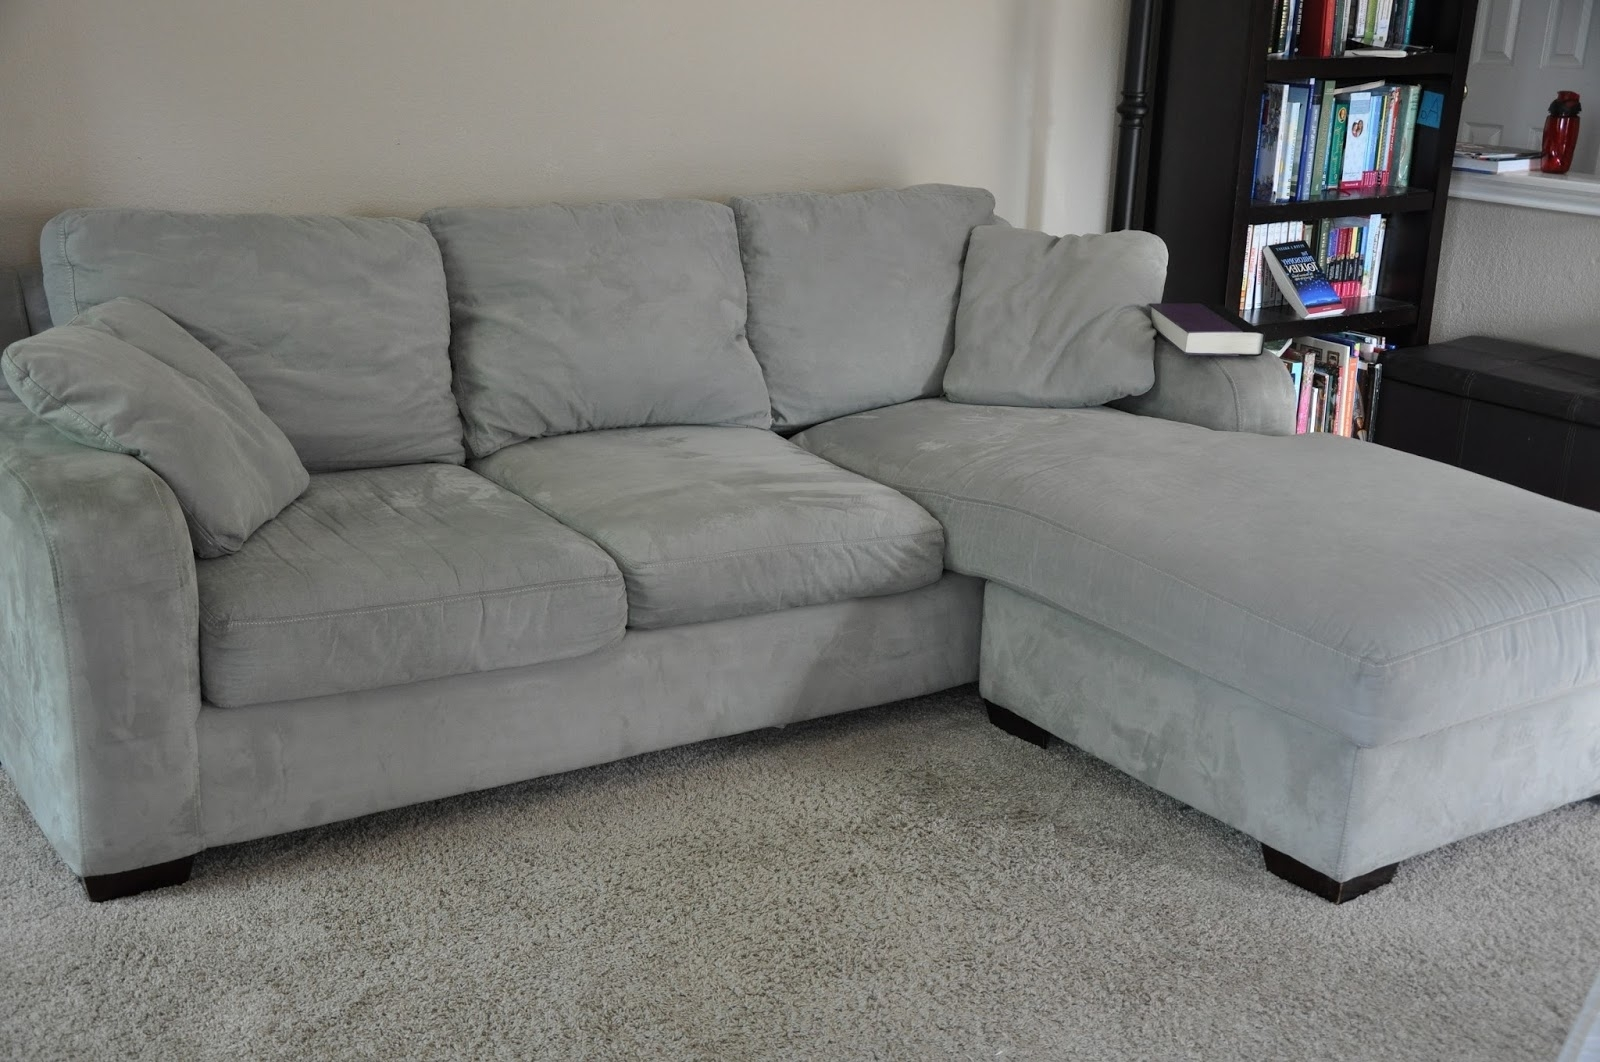 Overstuffed Sofas And Chairs With Fashionable Interior: Circle Sofa Chair And Overstuffed Couches (View 12 of 15)